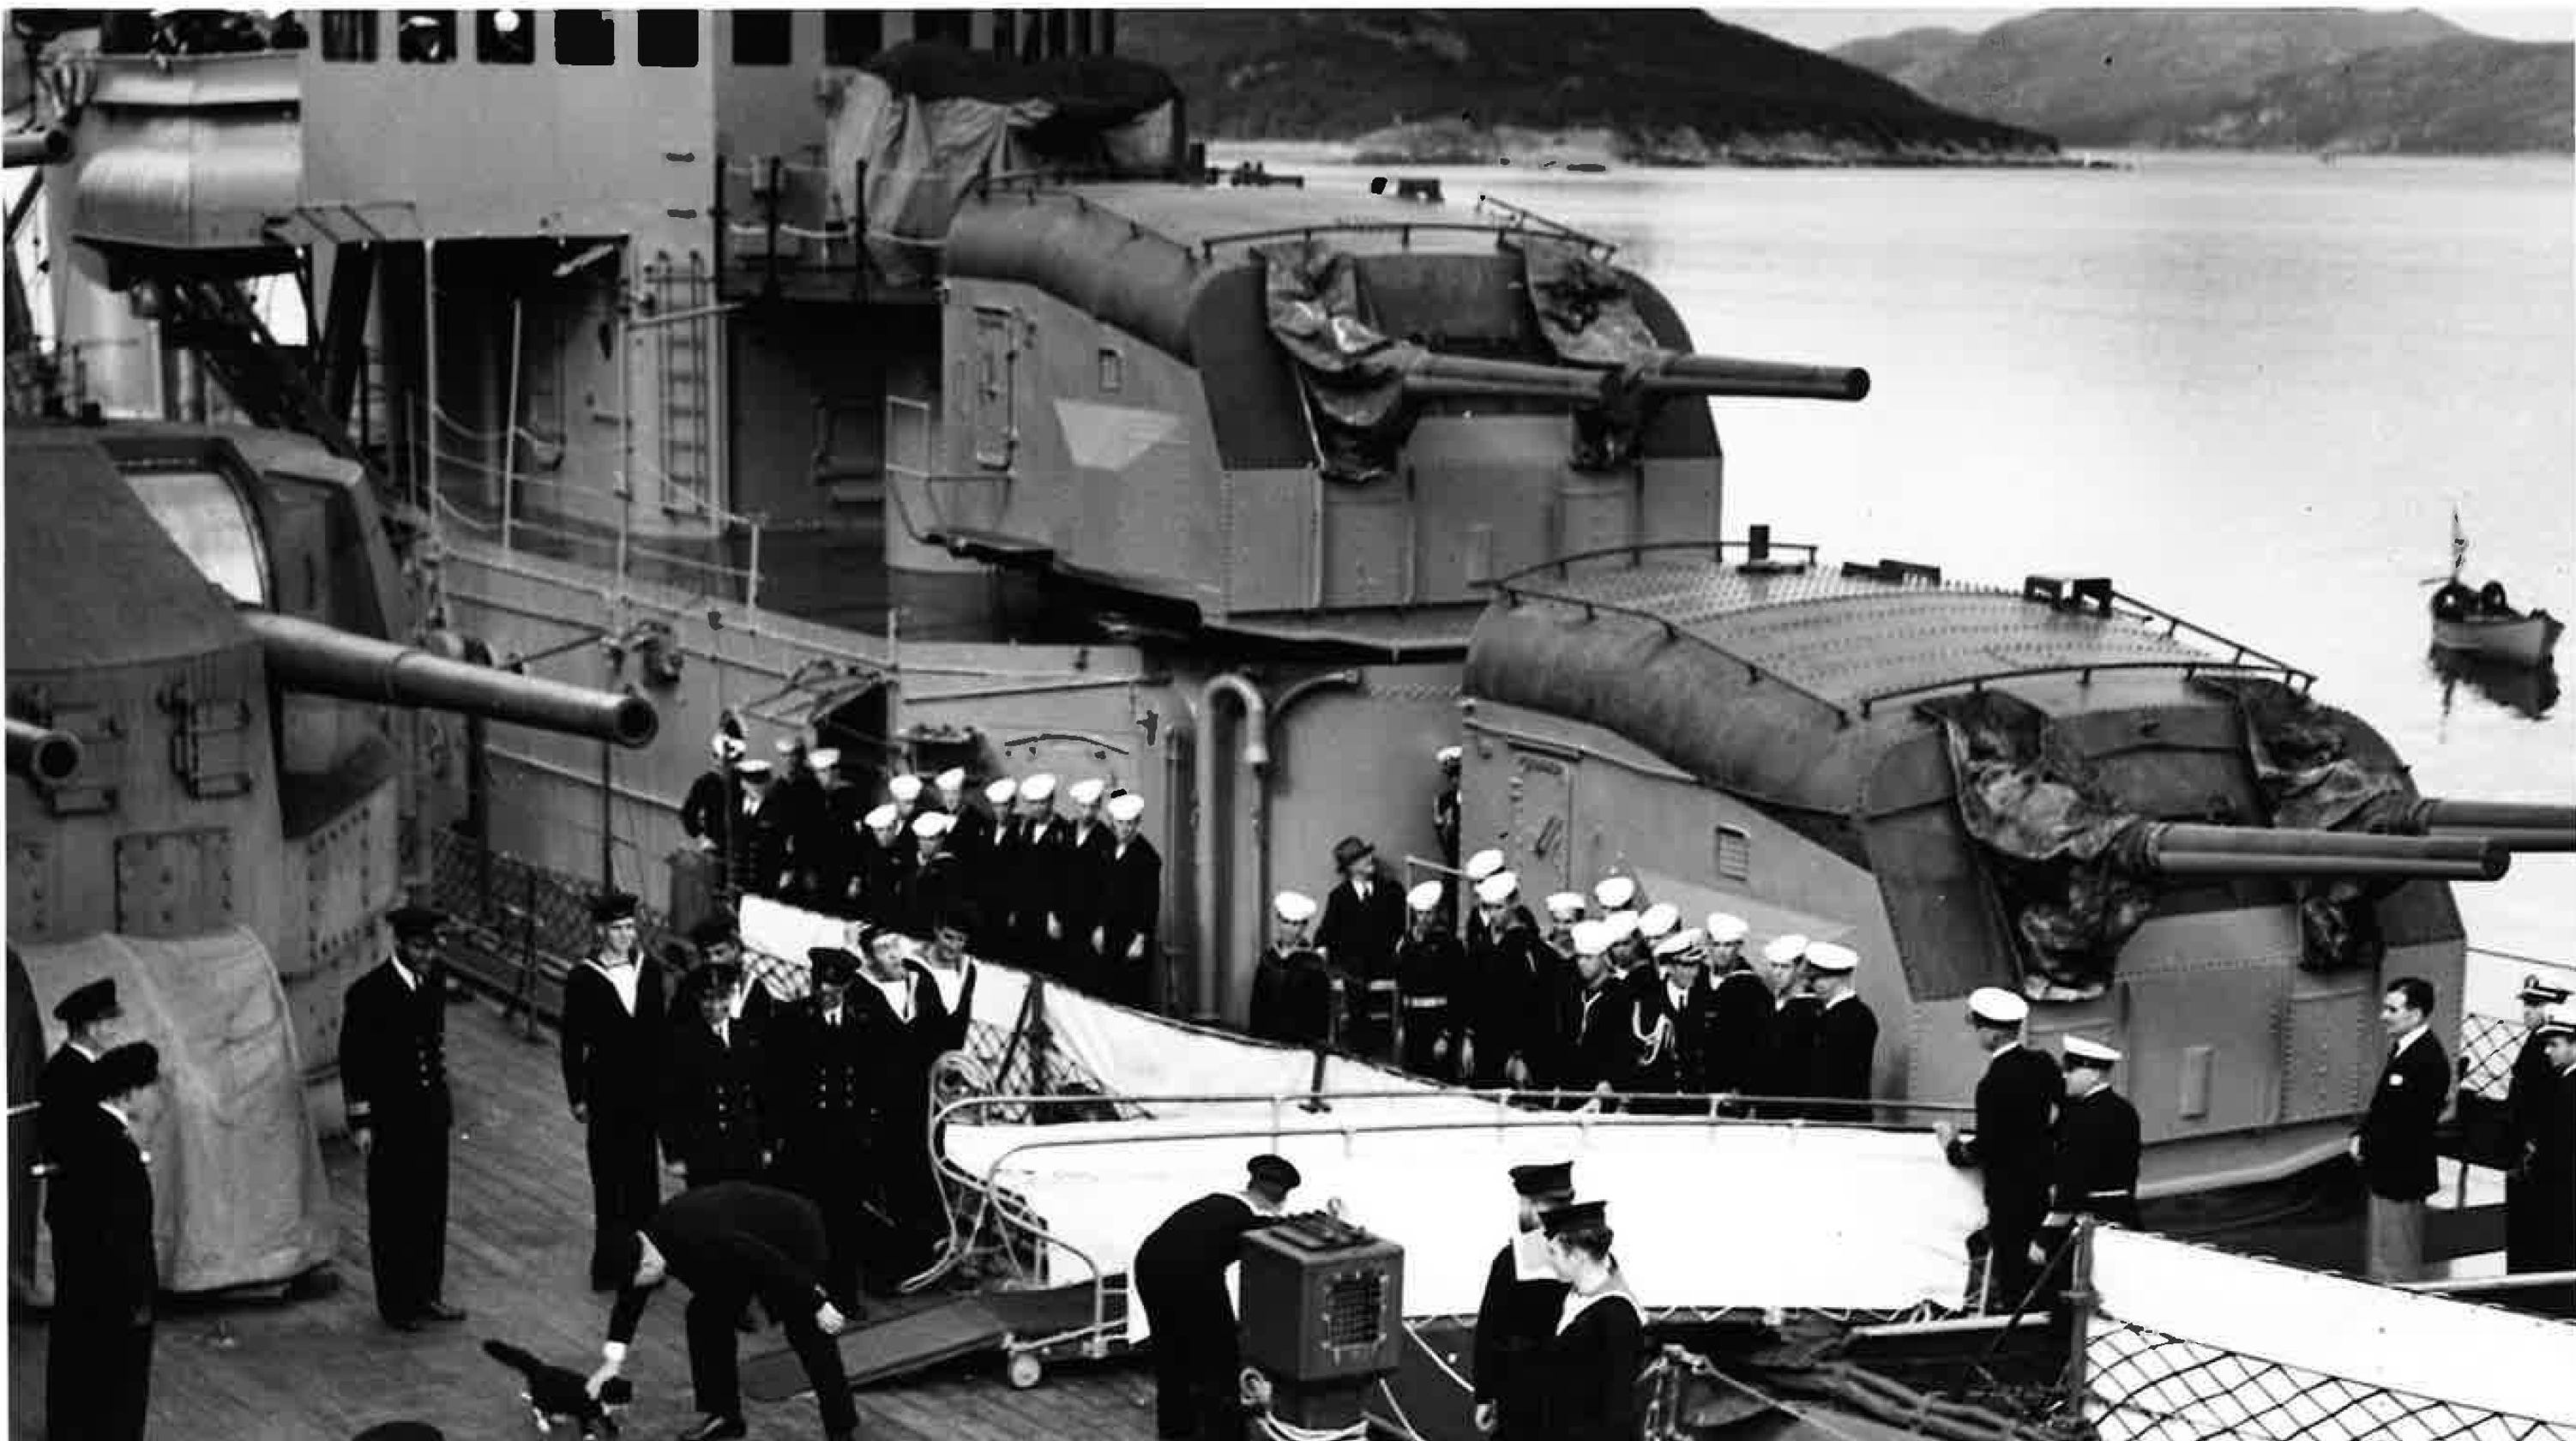 wwii photos of late naval officer illustrate key moments in history